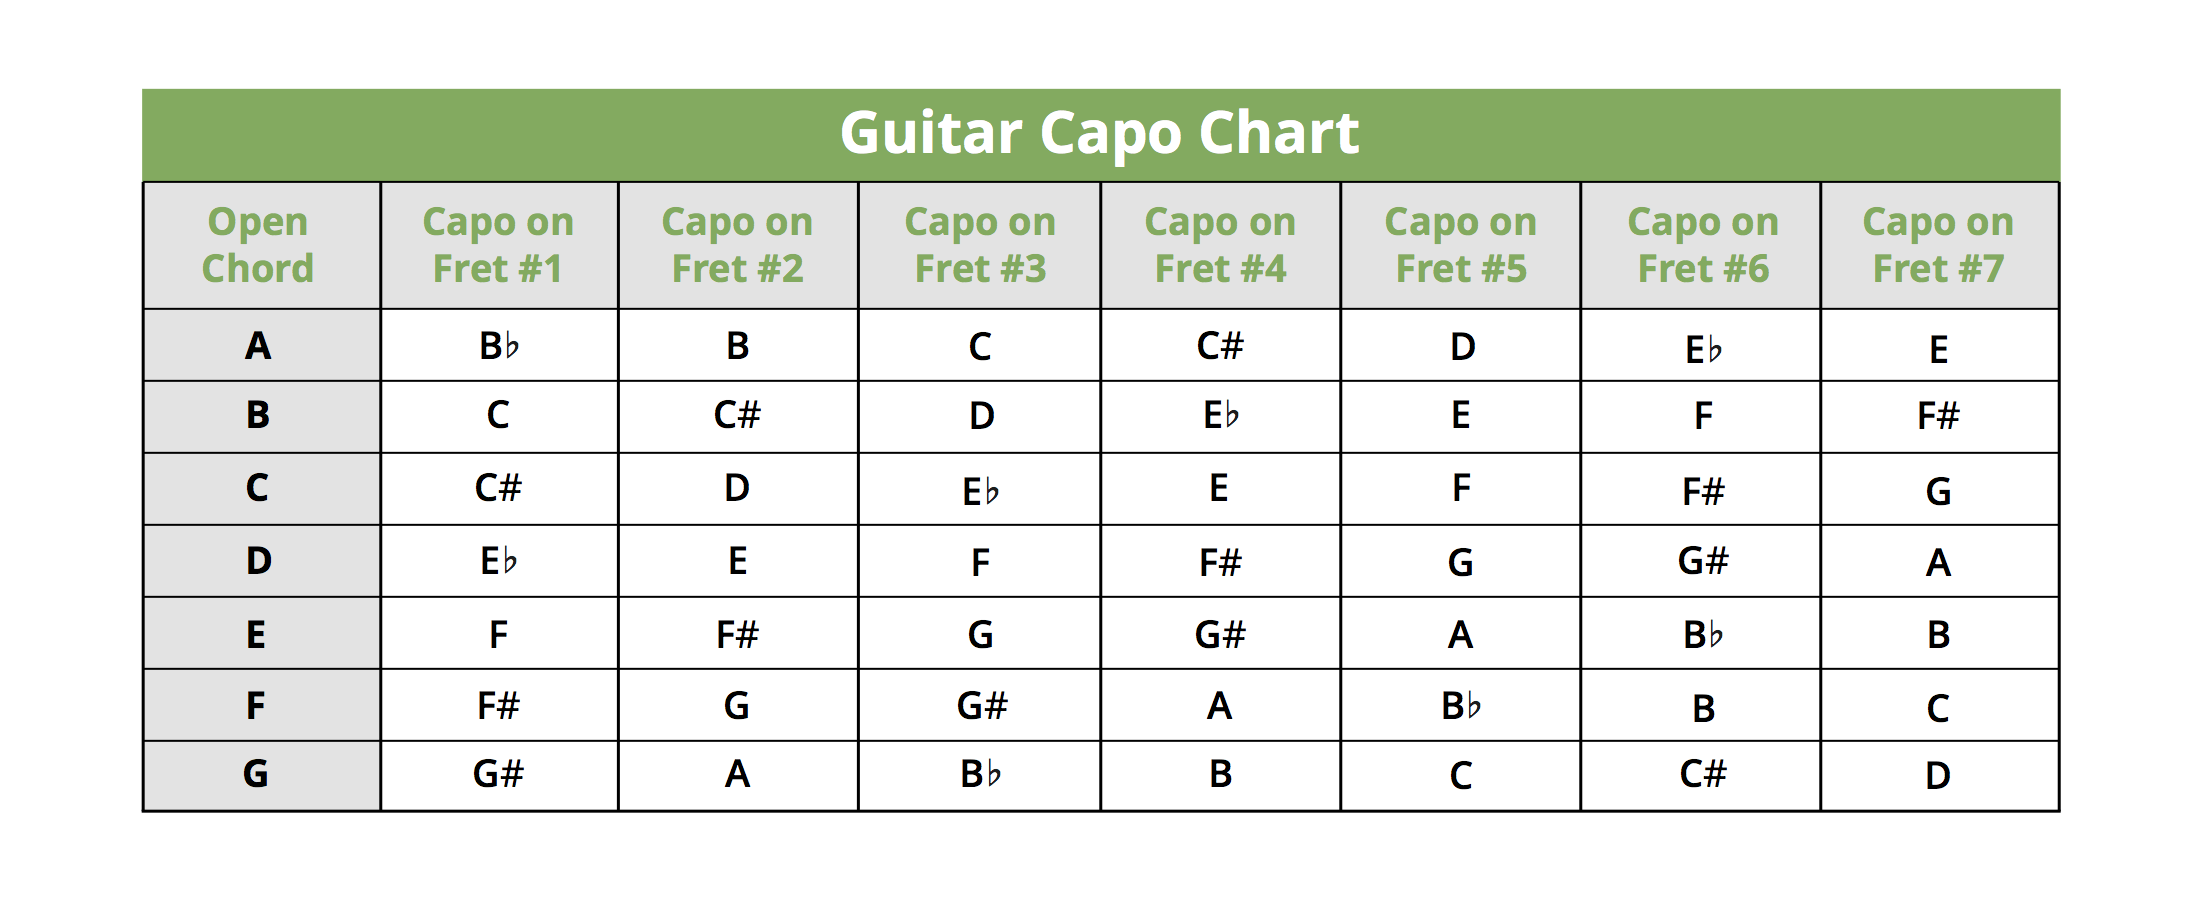 This Guitar Capo Chord Chart Shows What Each Chord Is Converted To